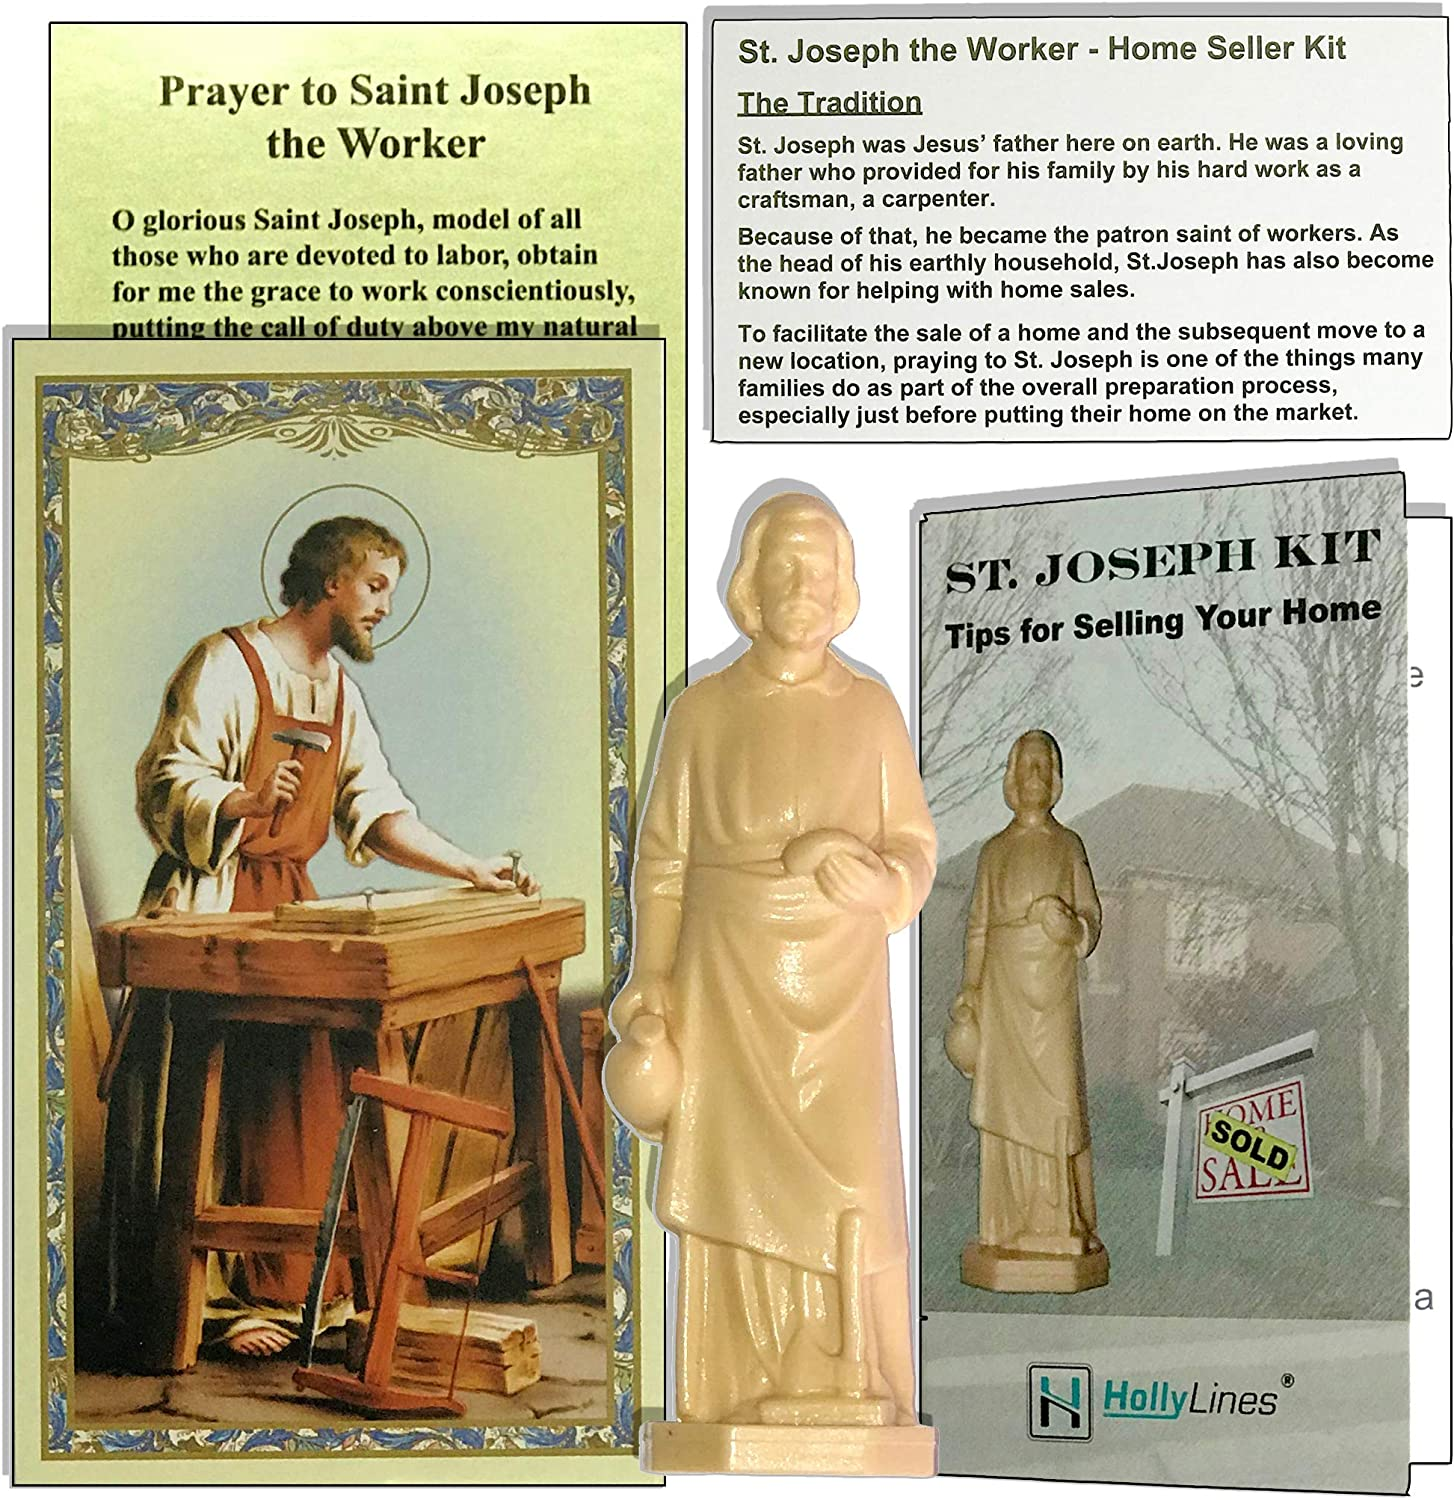 Holly Lines Saint Joseph Statue Home Sale Kit with Tips to Help Sell, Prayer Card and Instructions